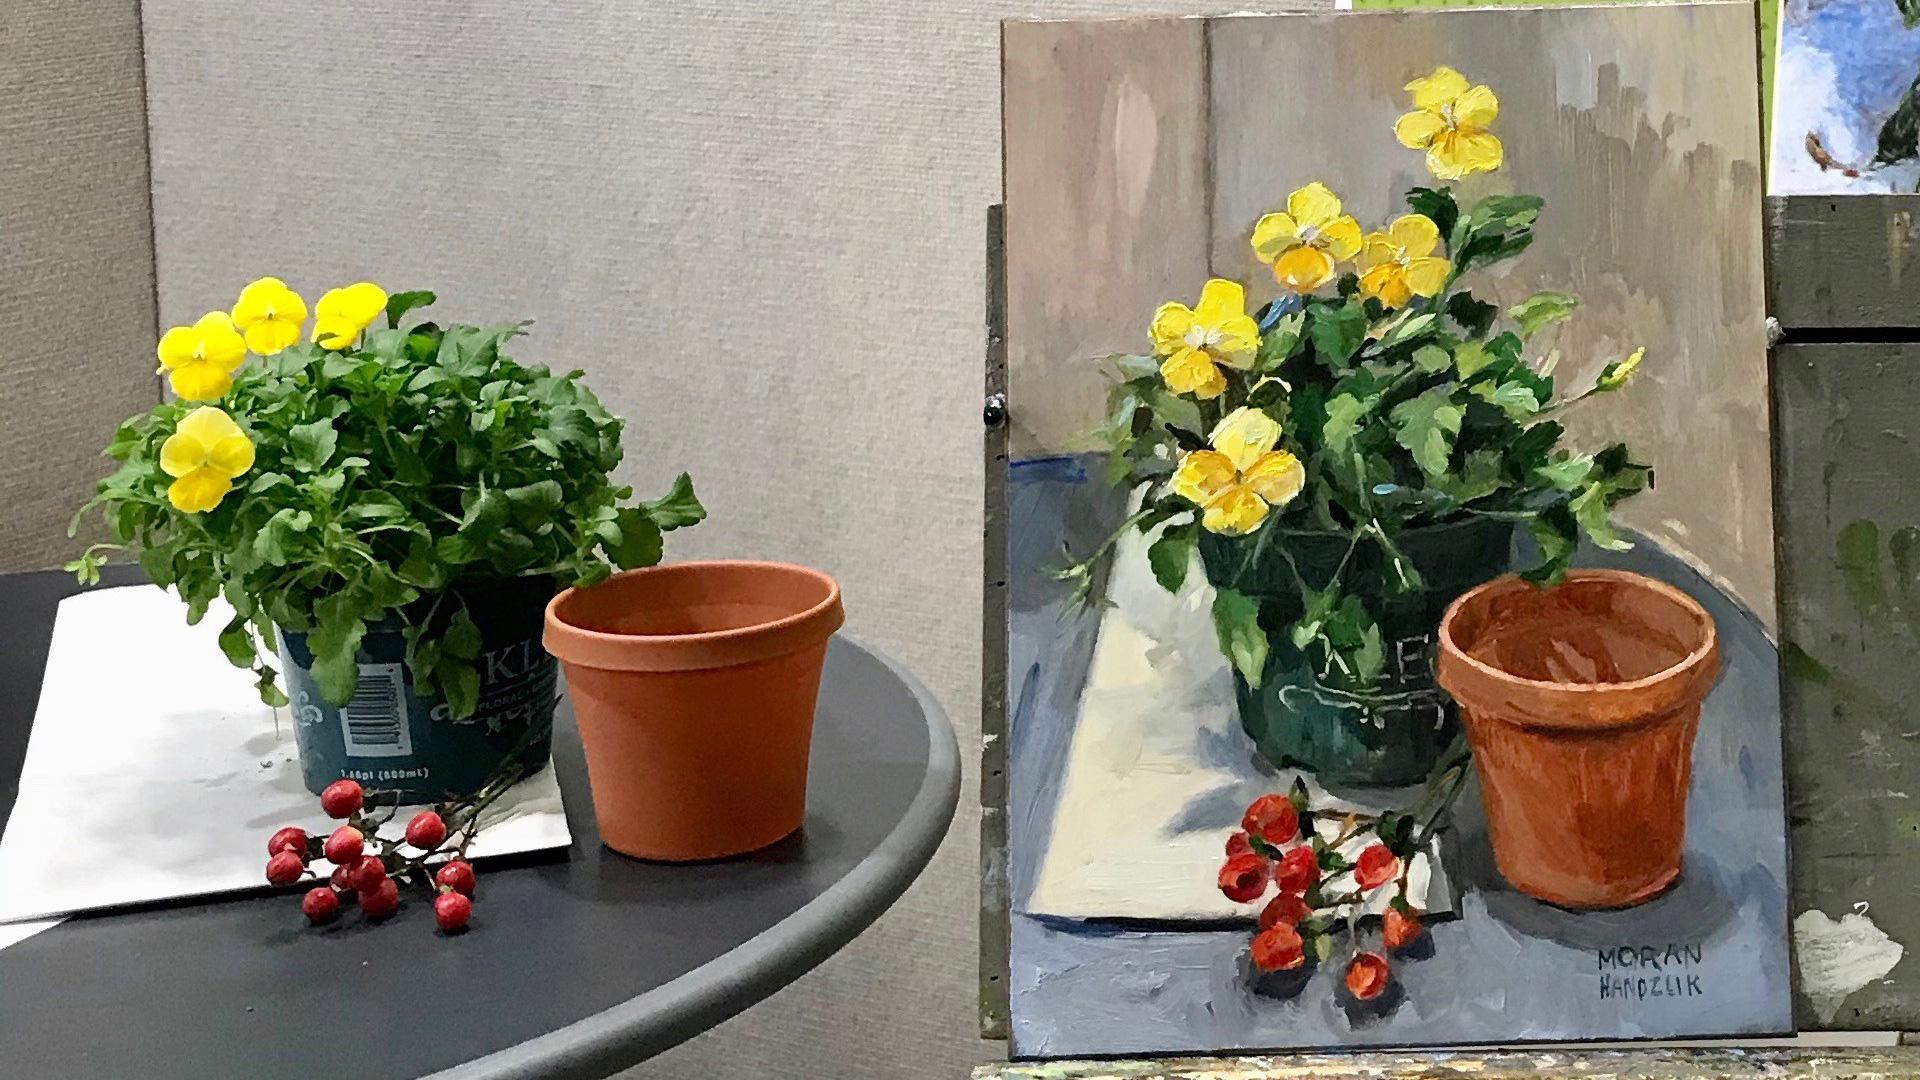 Still life painting of garden pot, berries, and yellow flowers